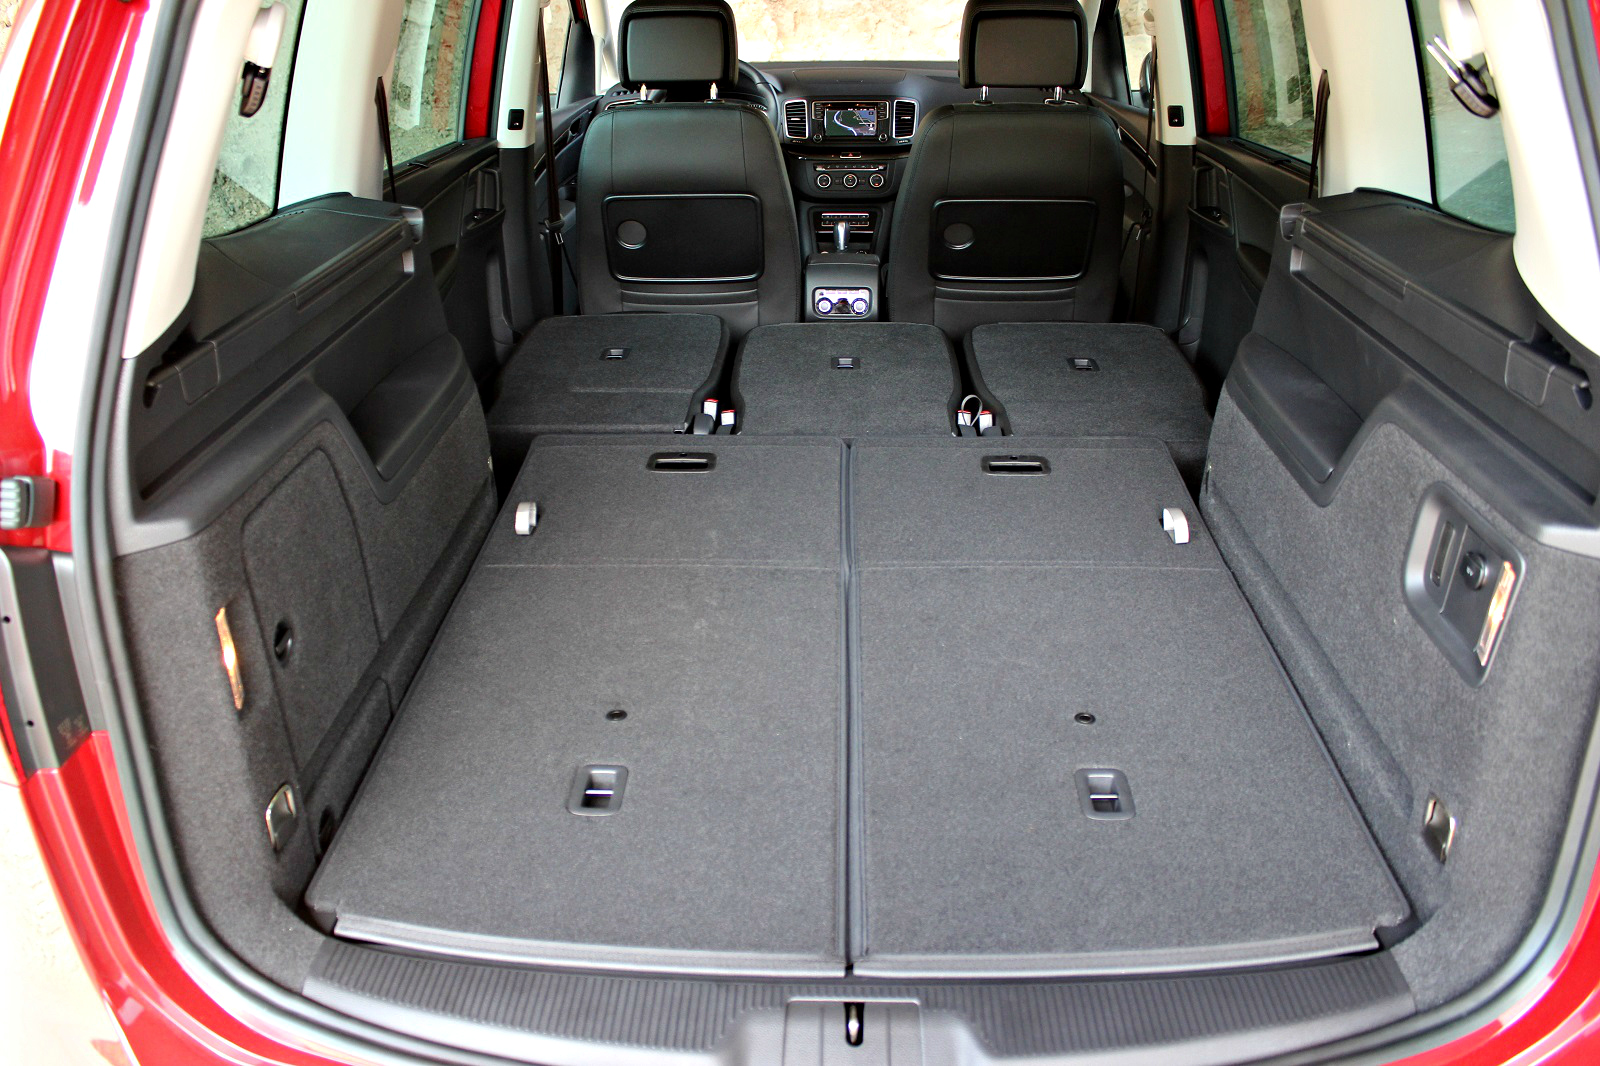 essai vid o seat alhambra restyl e guerre intestine. Black Bedroom Furniture Sets. Home Design Ideas